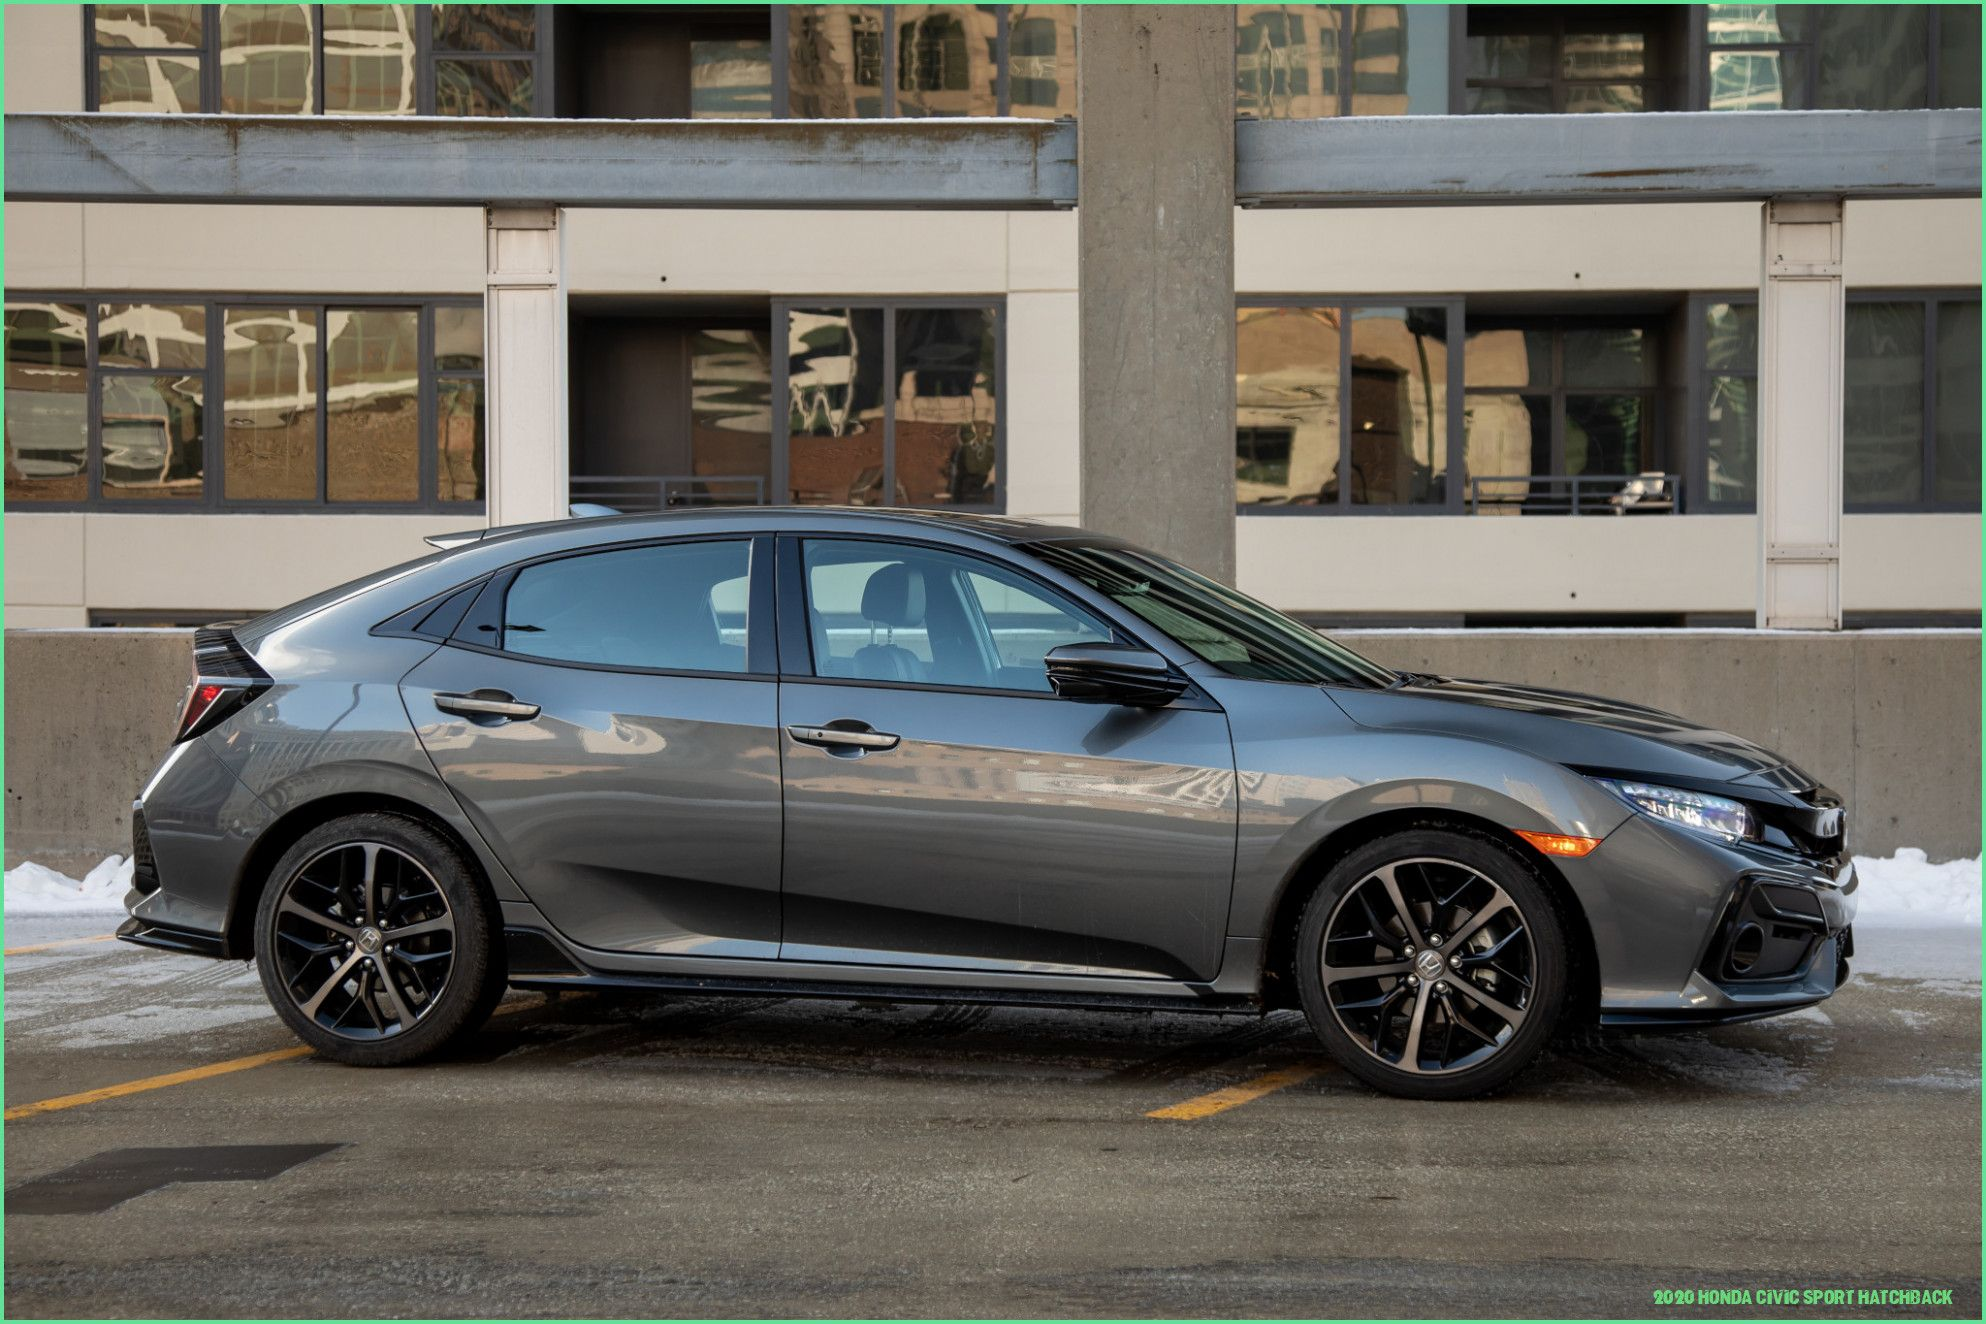 Do You Know How Many People Show Up At 9 Honda Civic Sport Hatchback 9 Honda Civic Sport Hatchback Ht Honda Civic Hatchback Honda Civic Sport Civic Hatchback